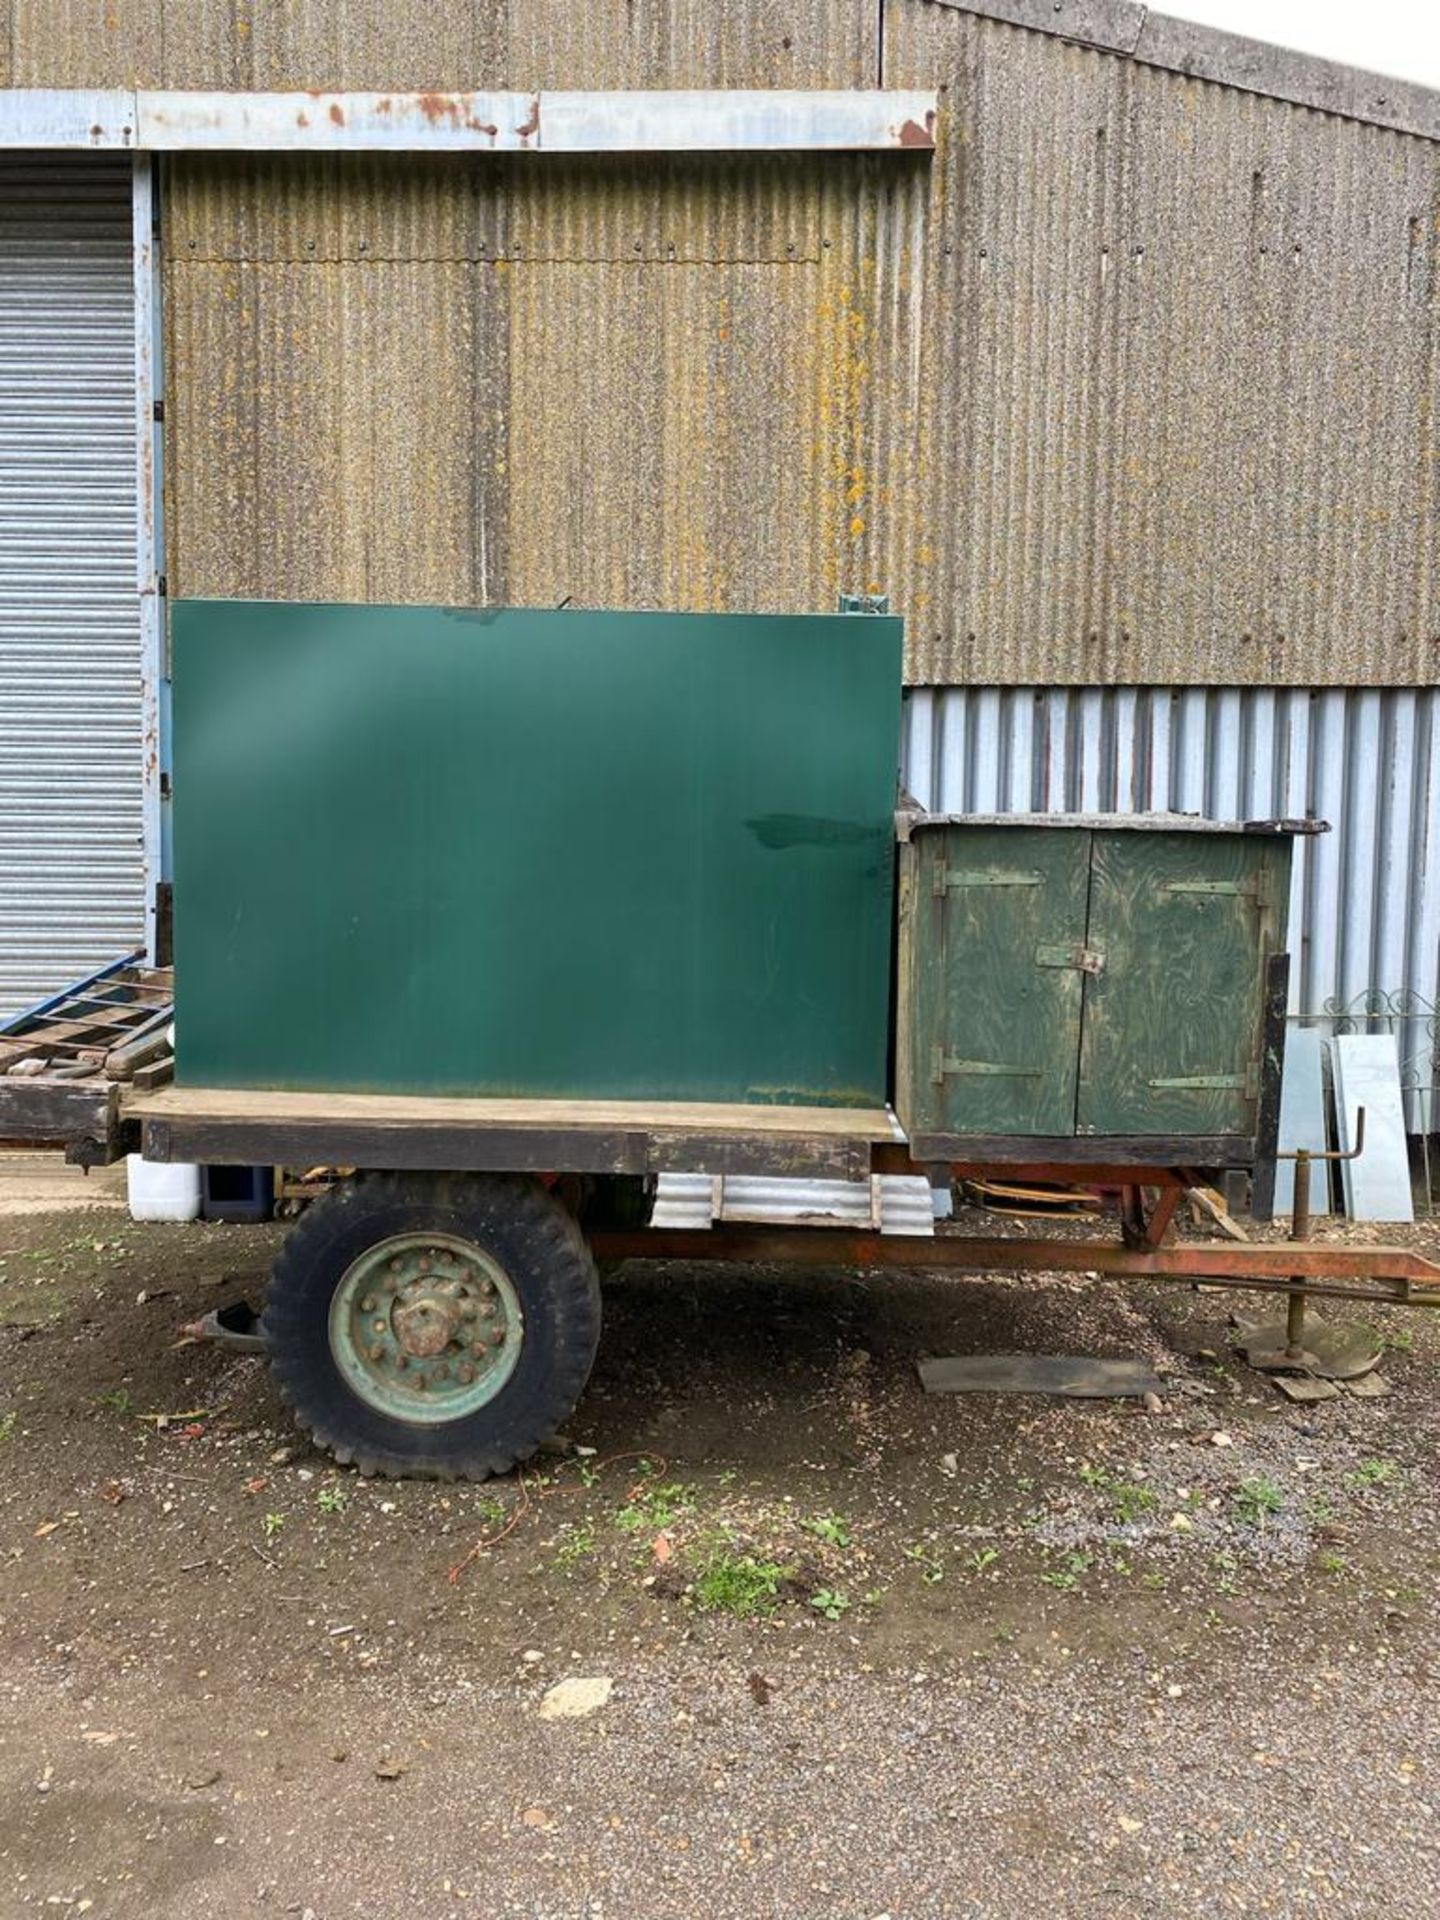 10 ft single axle trailer, metal floor with 800gal metal tank and 12v electric pump - Image 6 of 7